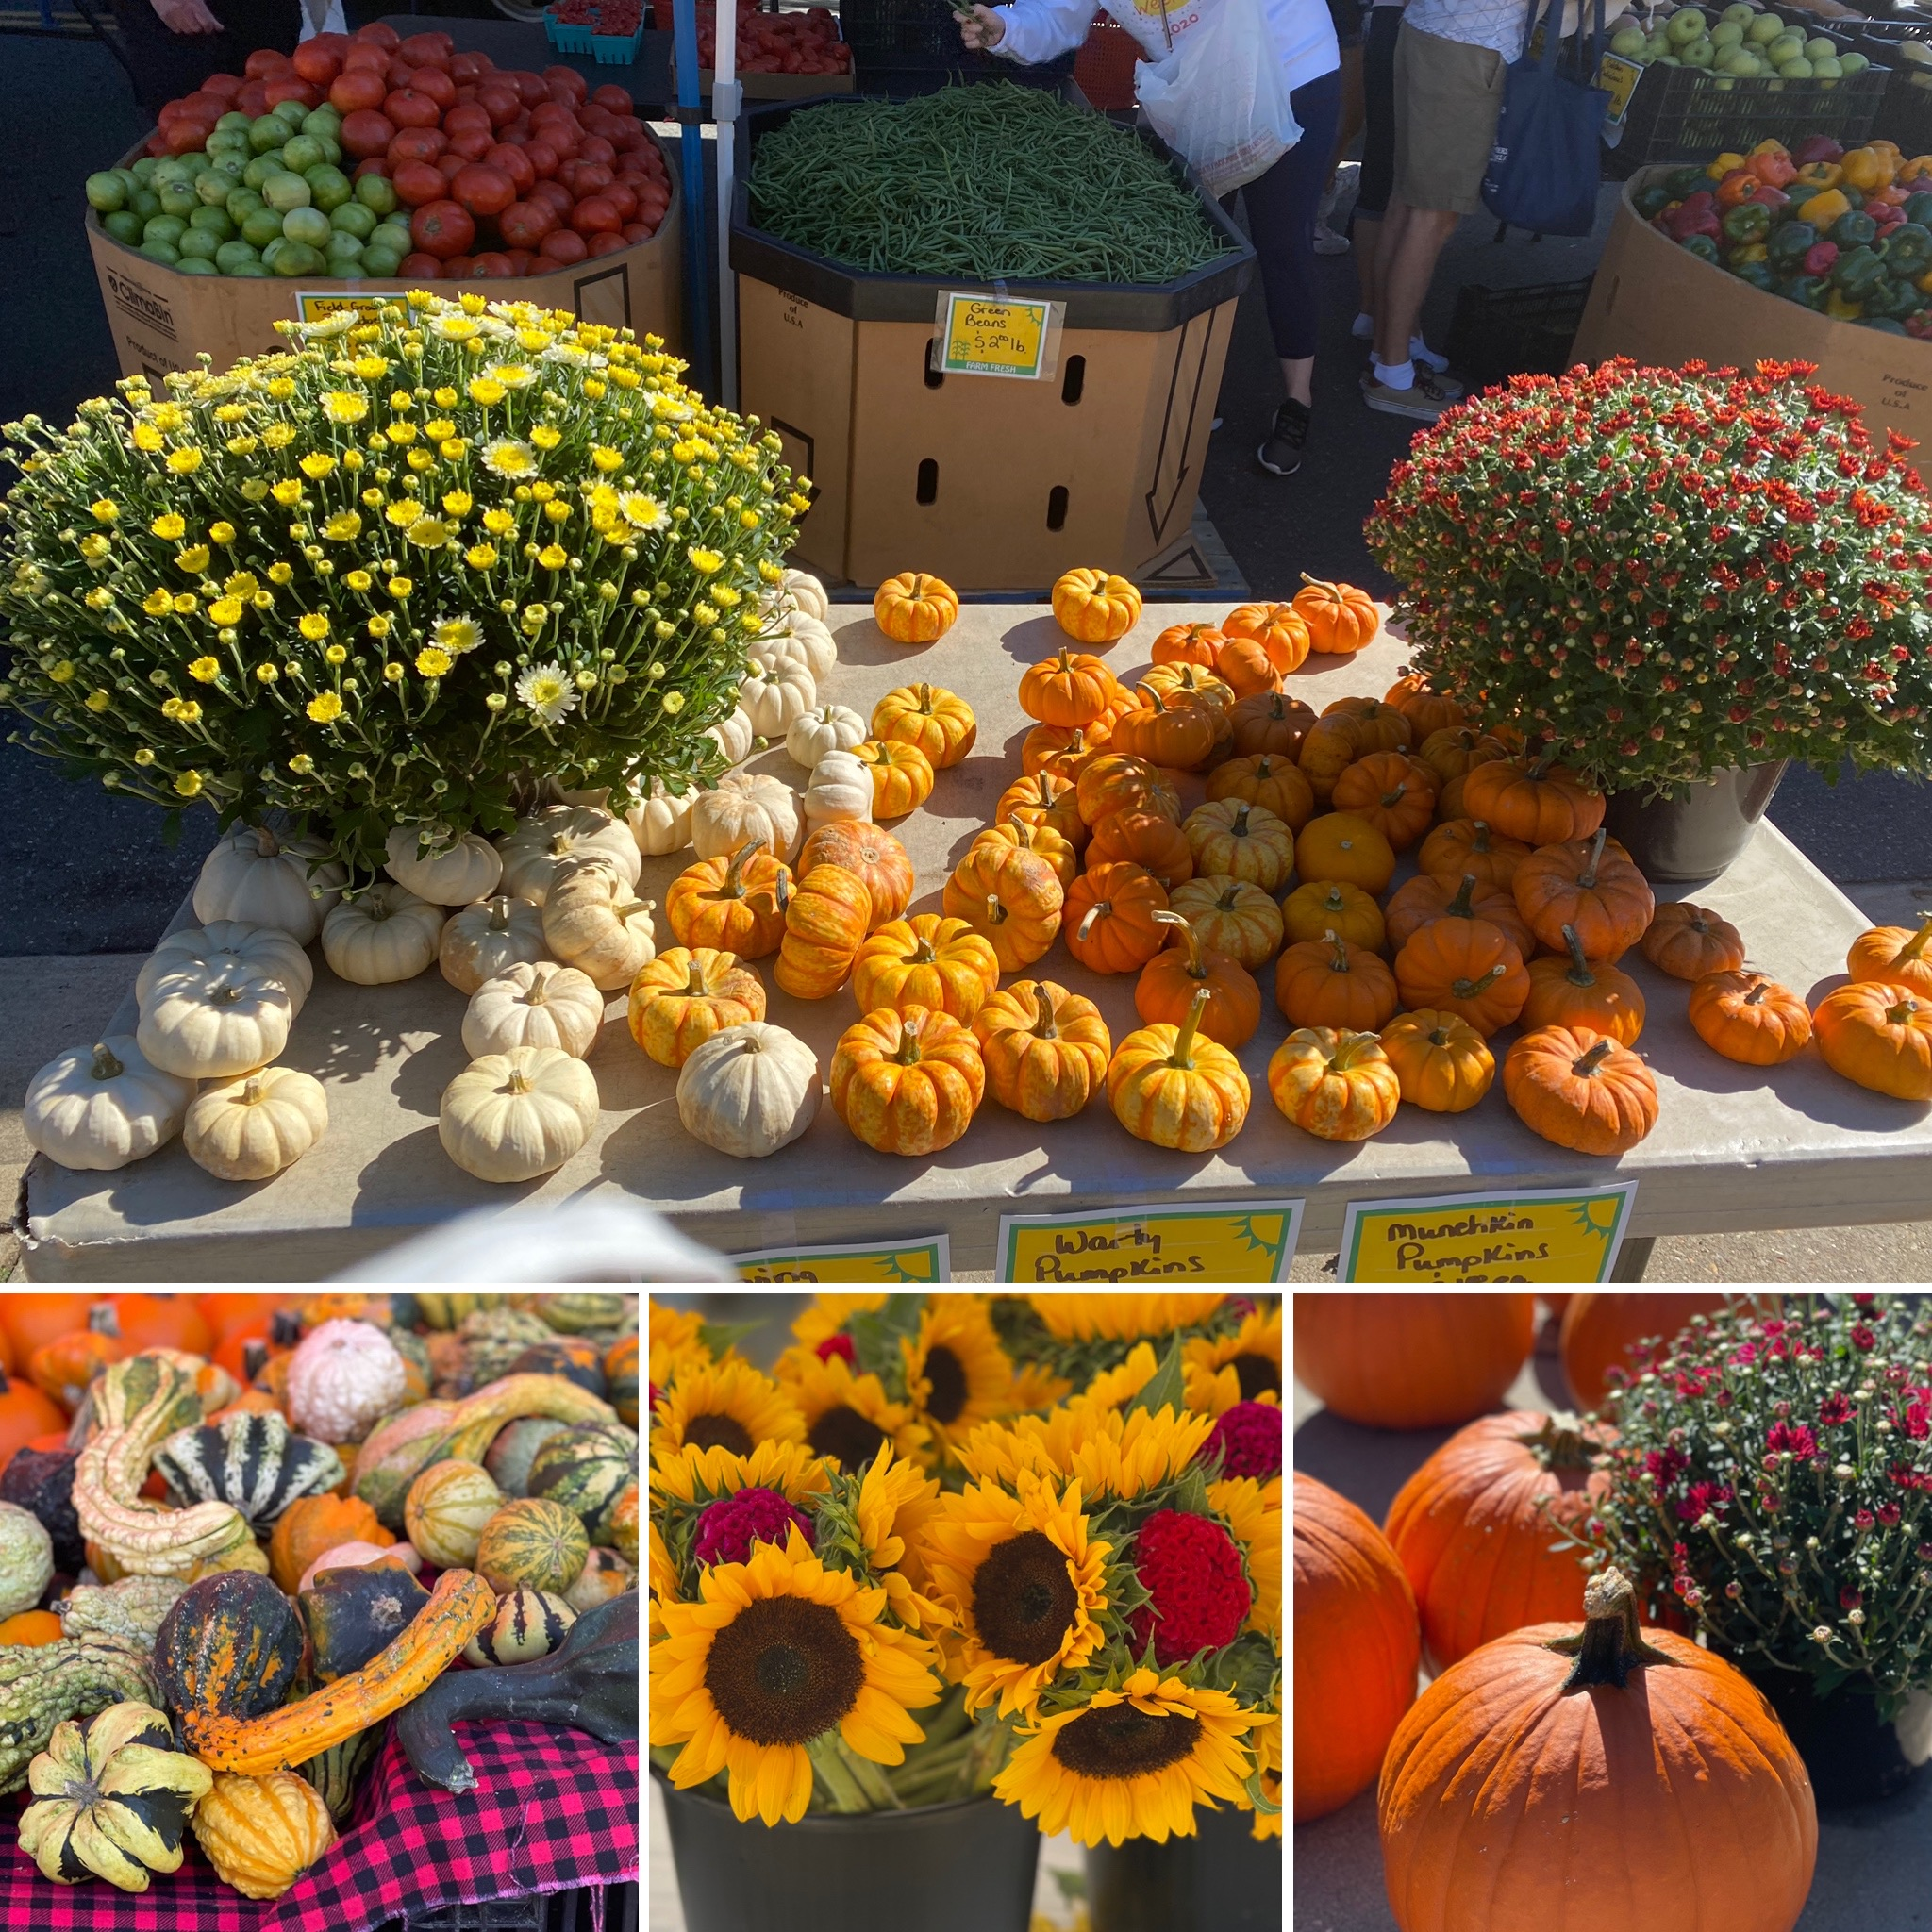 There can be no doubt that it's Autumn at the Fredericksburg Farmers Market.